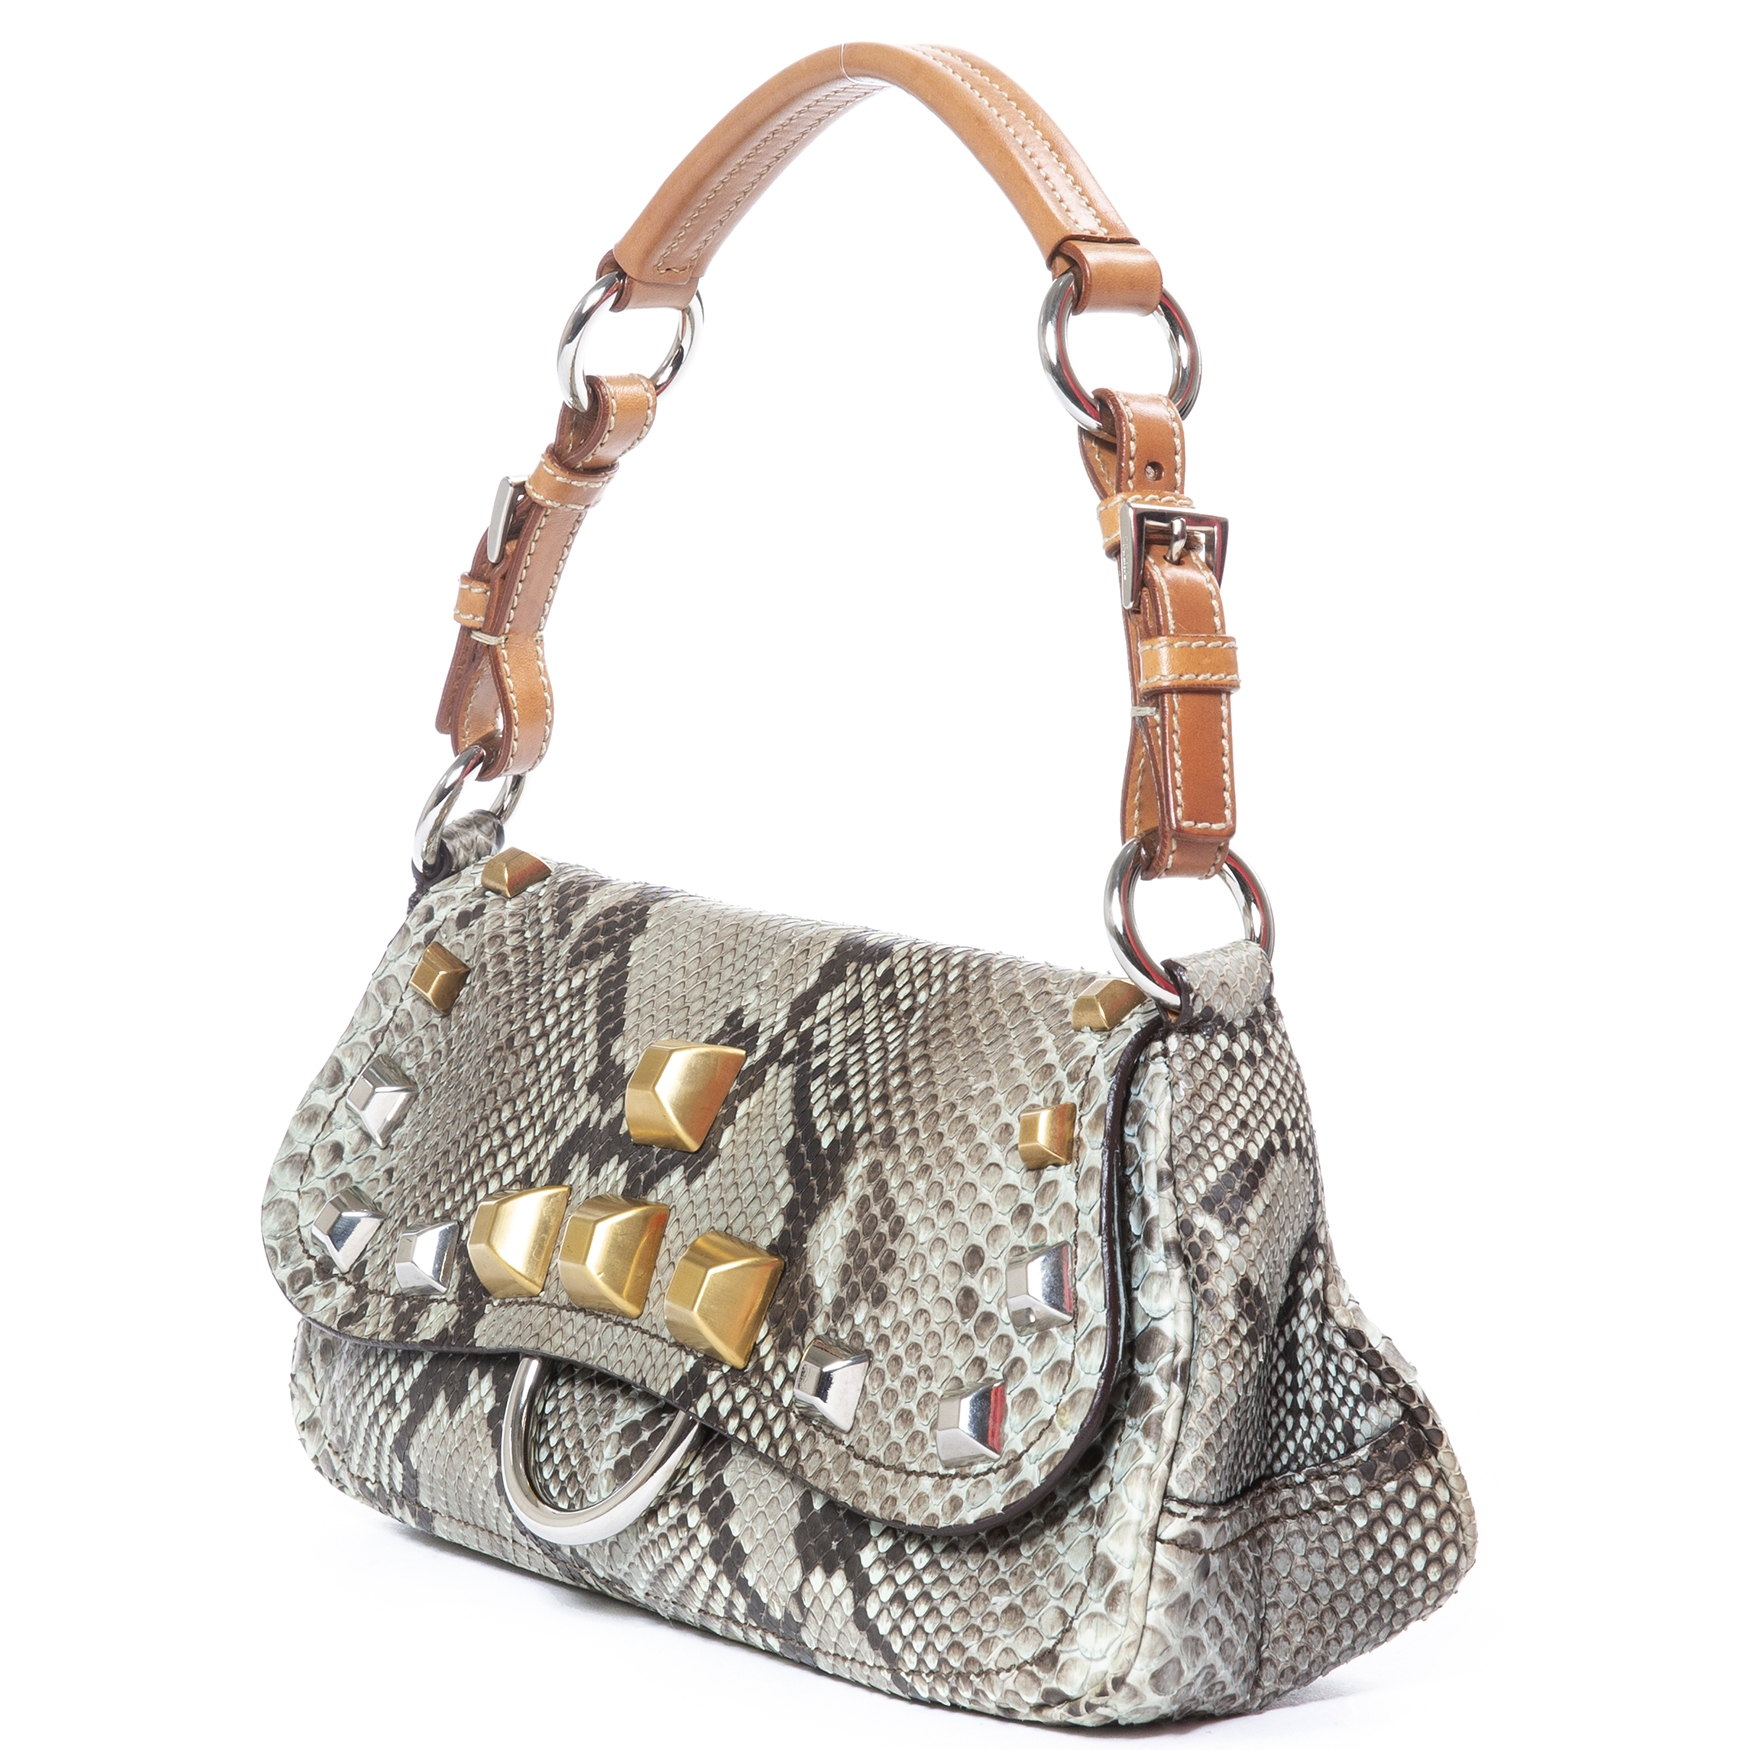 d144146244e4 ... Labellov Are you looking for an iconic Prada Python Stud Shoulder Bag?